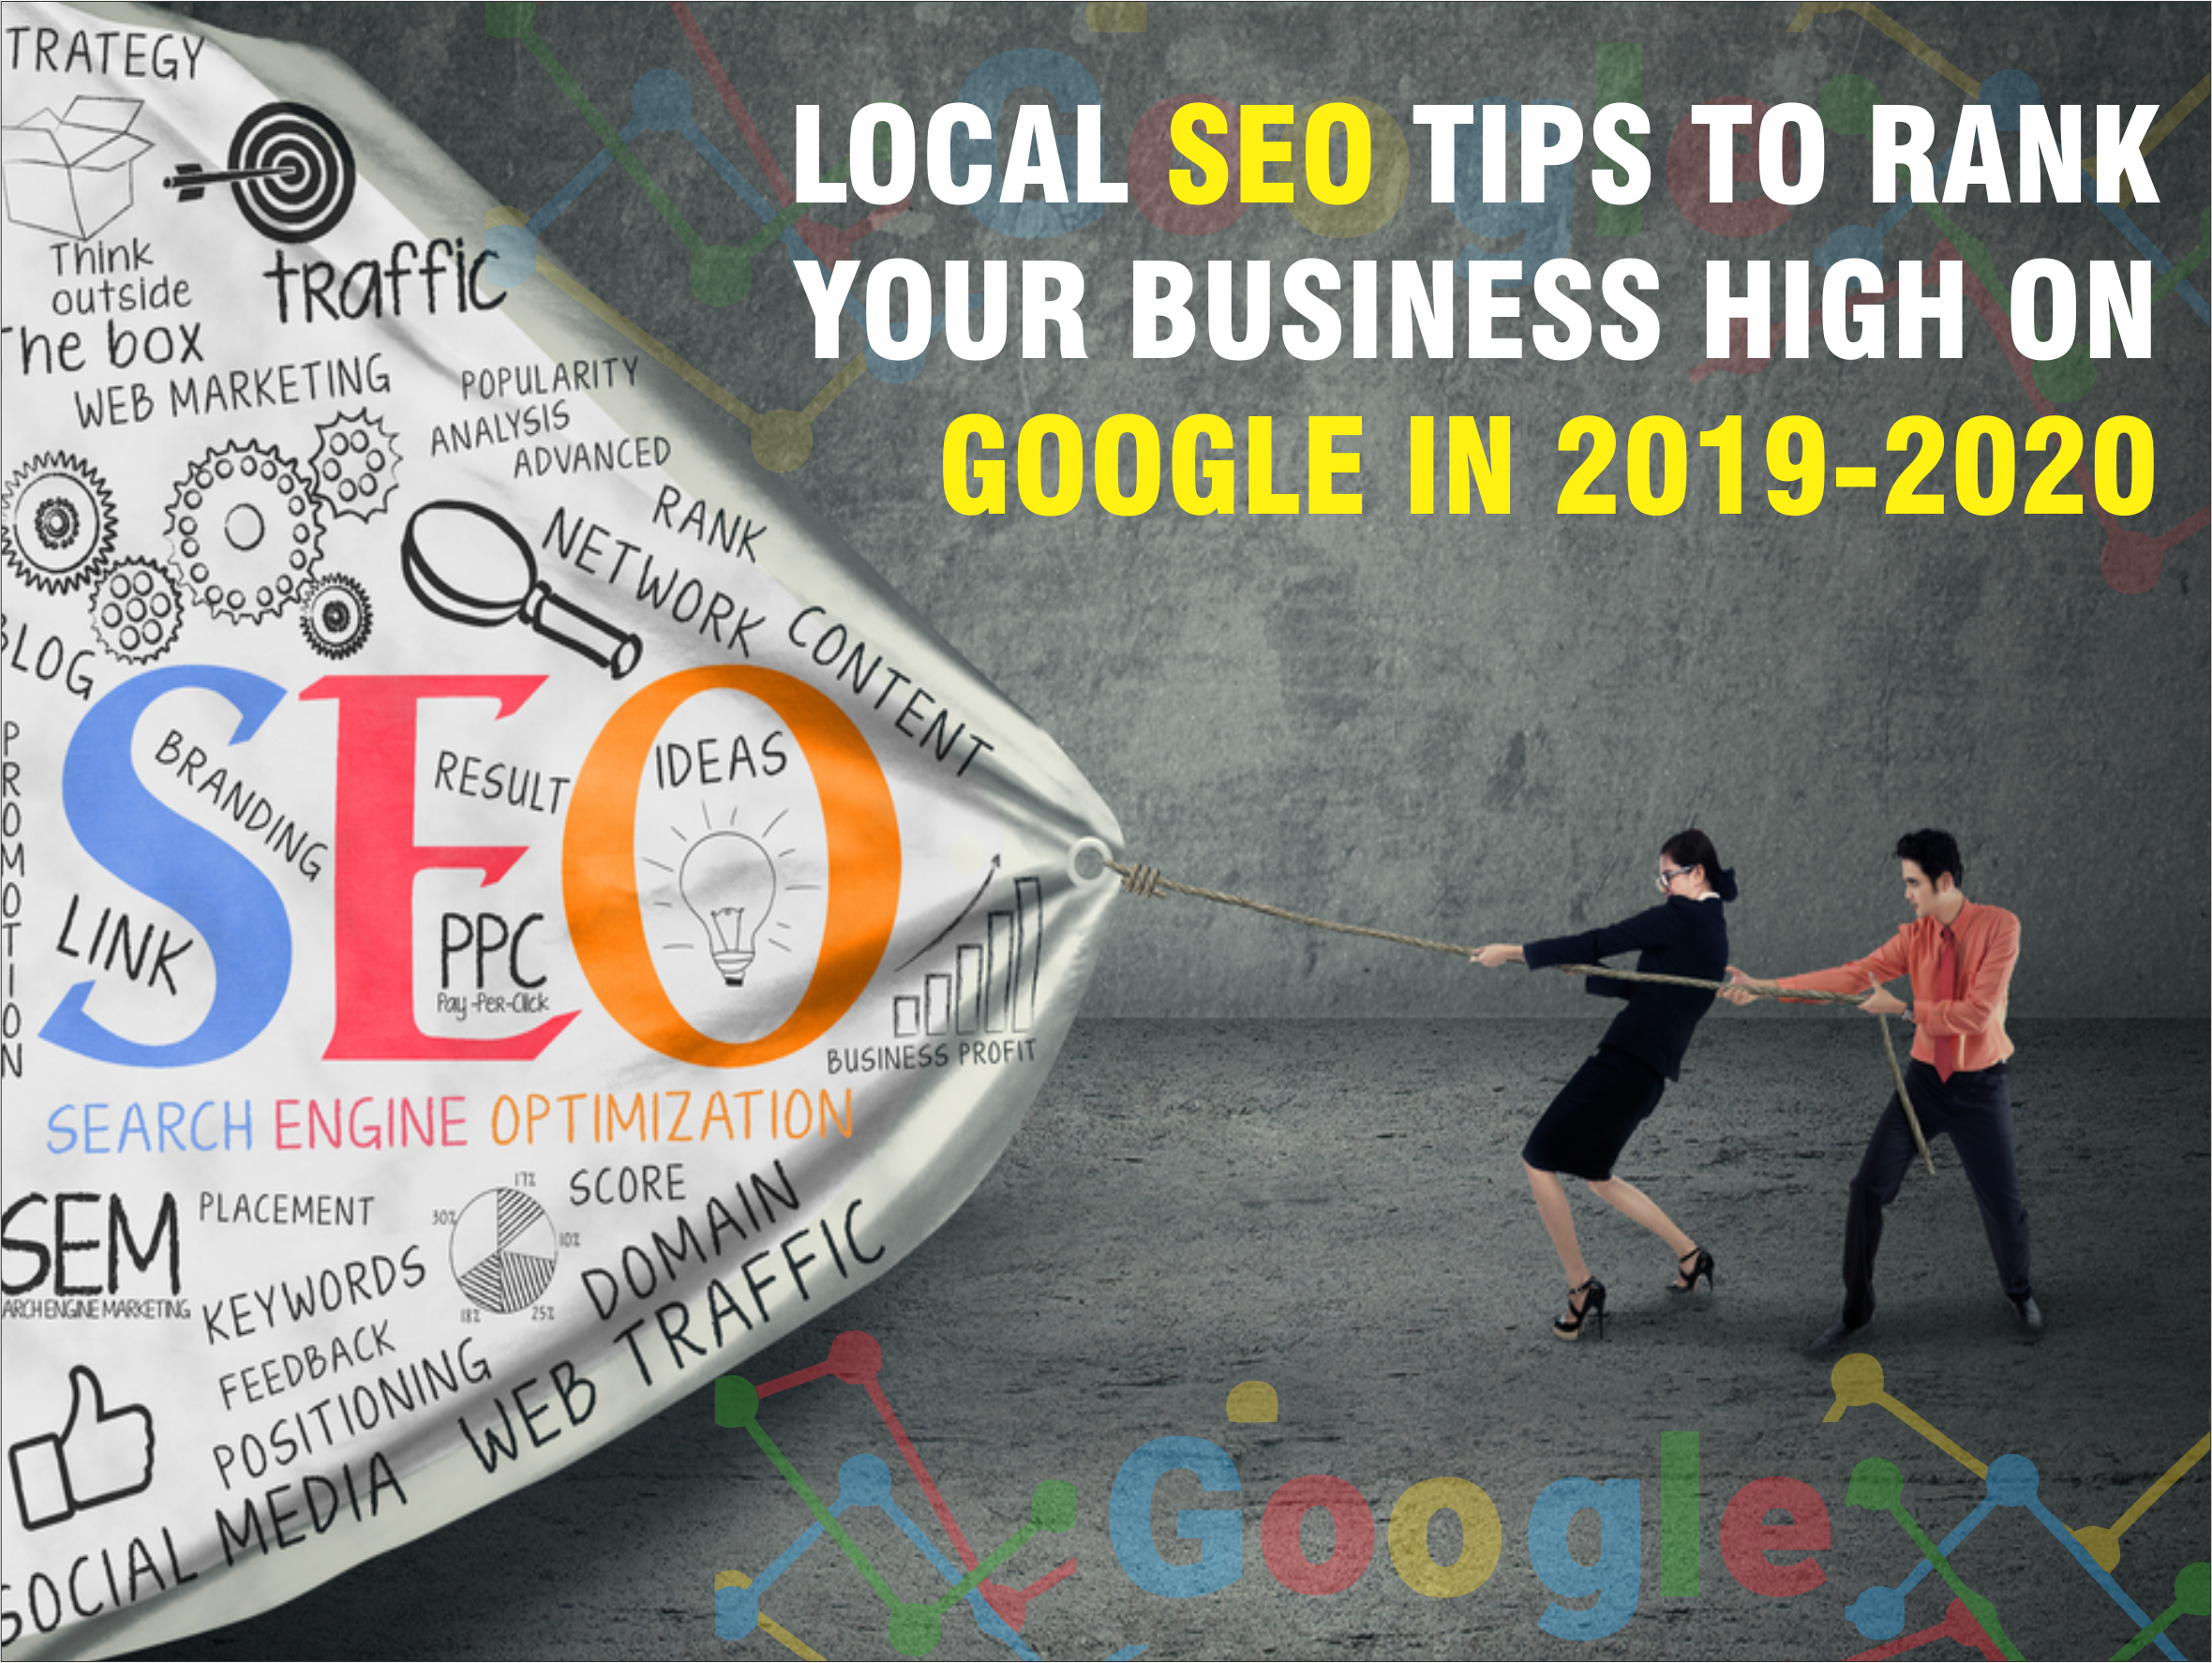 Local SEO Tips to Rank Your Business High on Google in 2019-2020